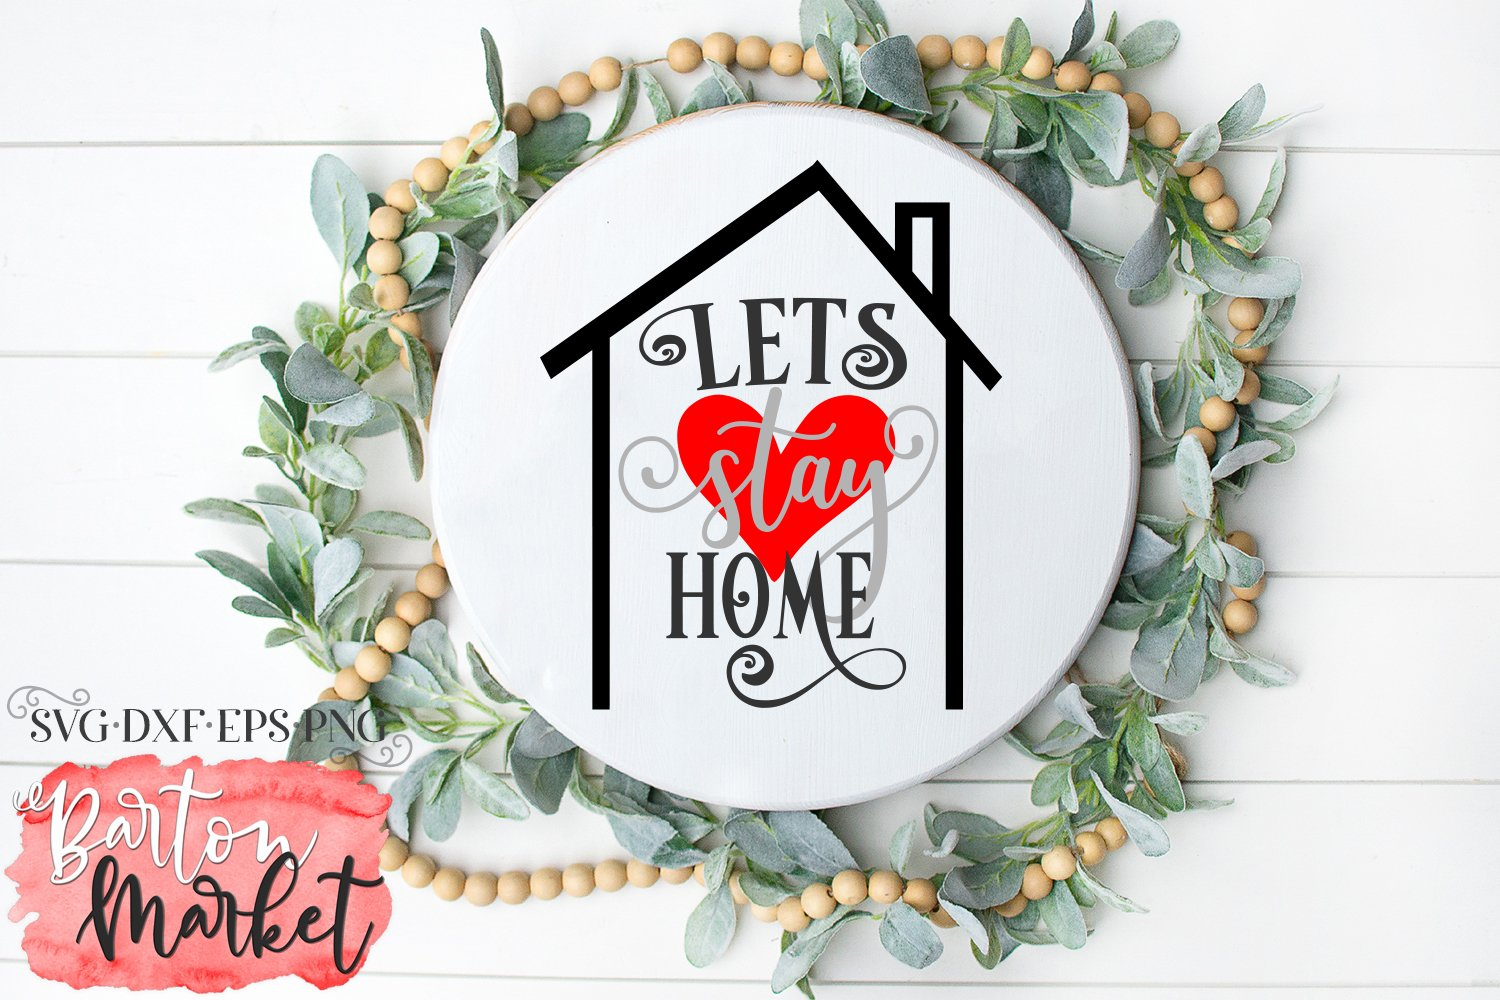 Lets Stay Home SVG DXF EPS PNG example image 4